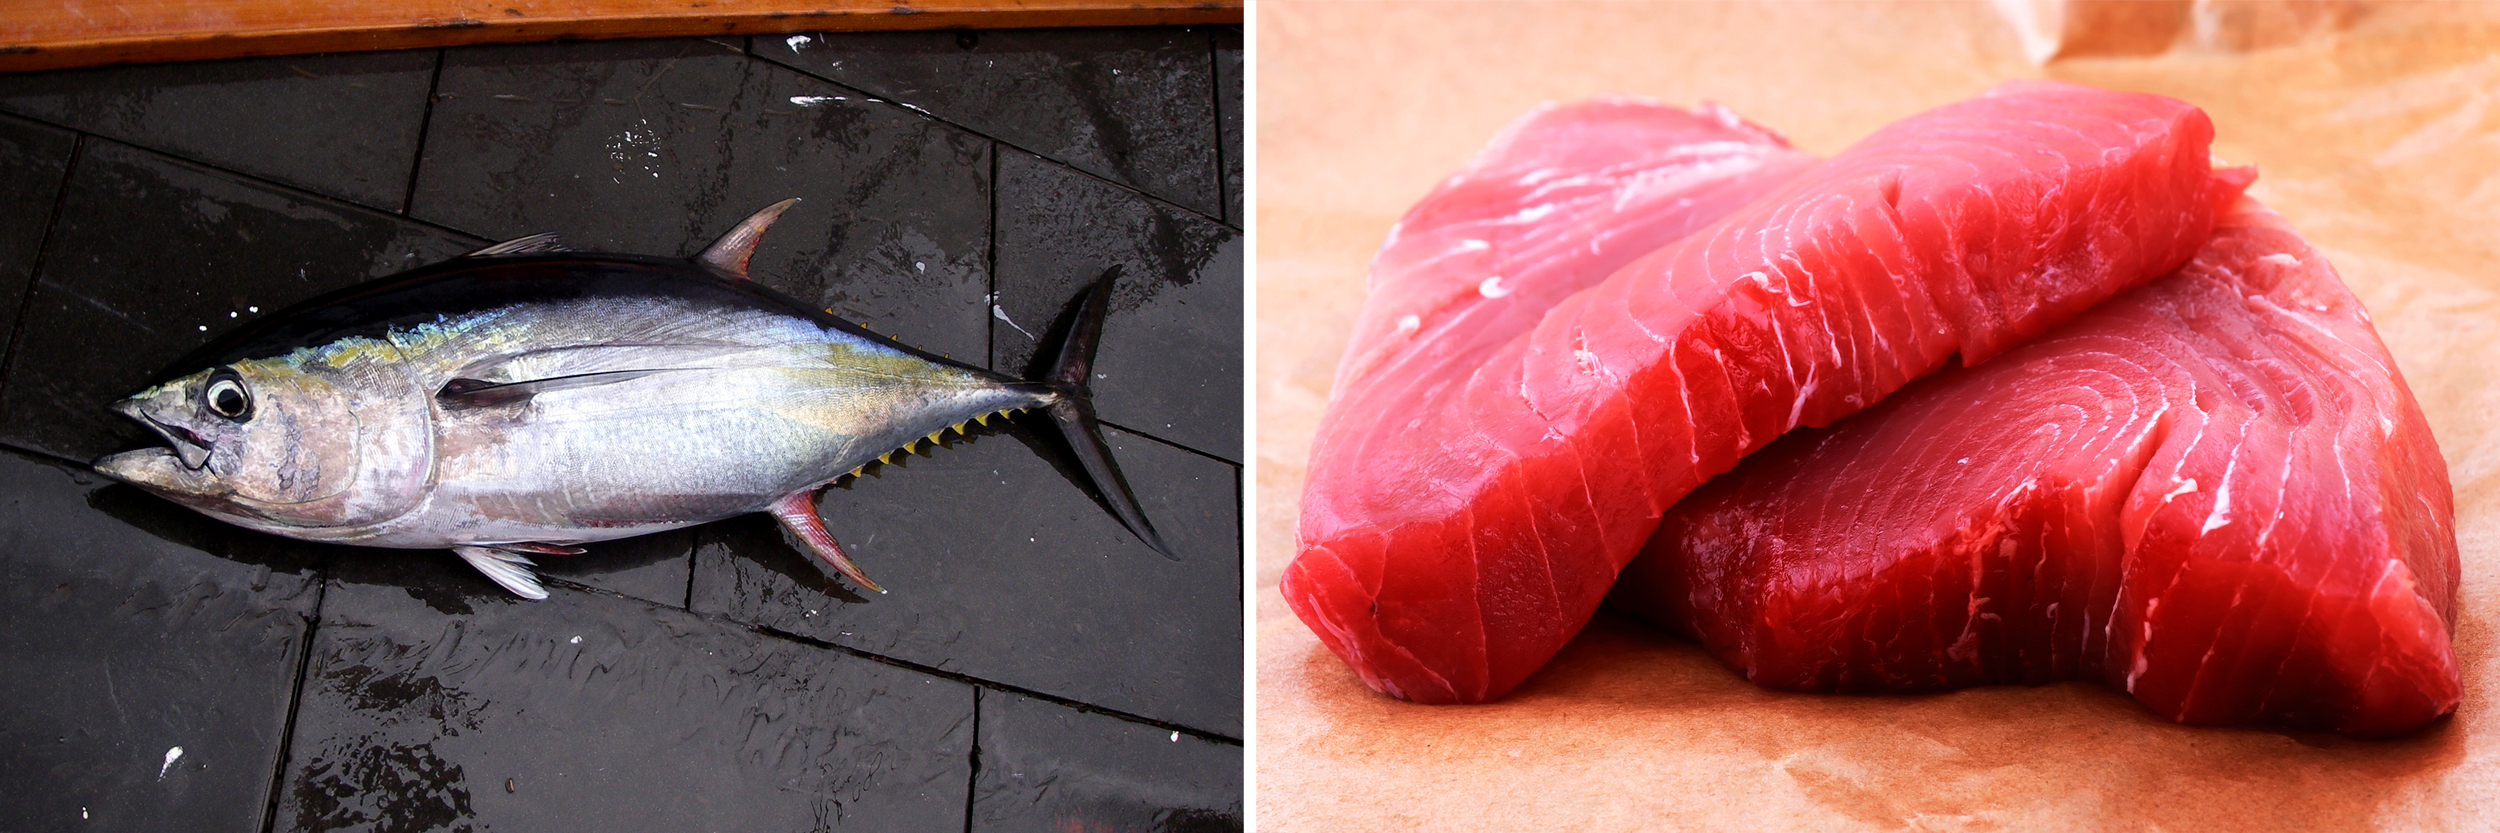 A yellowfin tuna caught in the Gulf of Mexico; a yellowfin tuna steak. Photos: NOAA/Flickr;Chang/iStockphoto